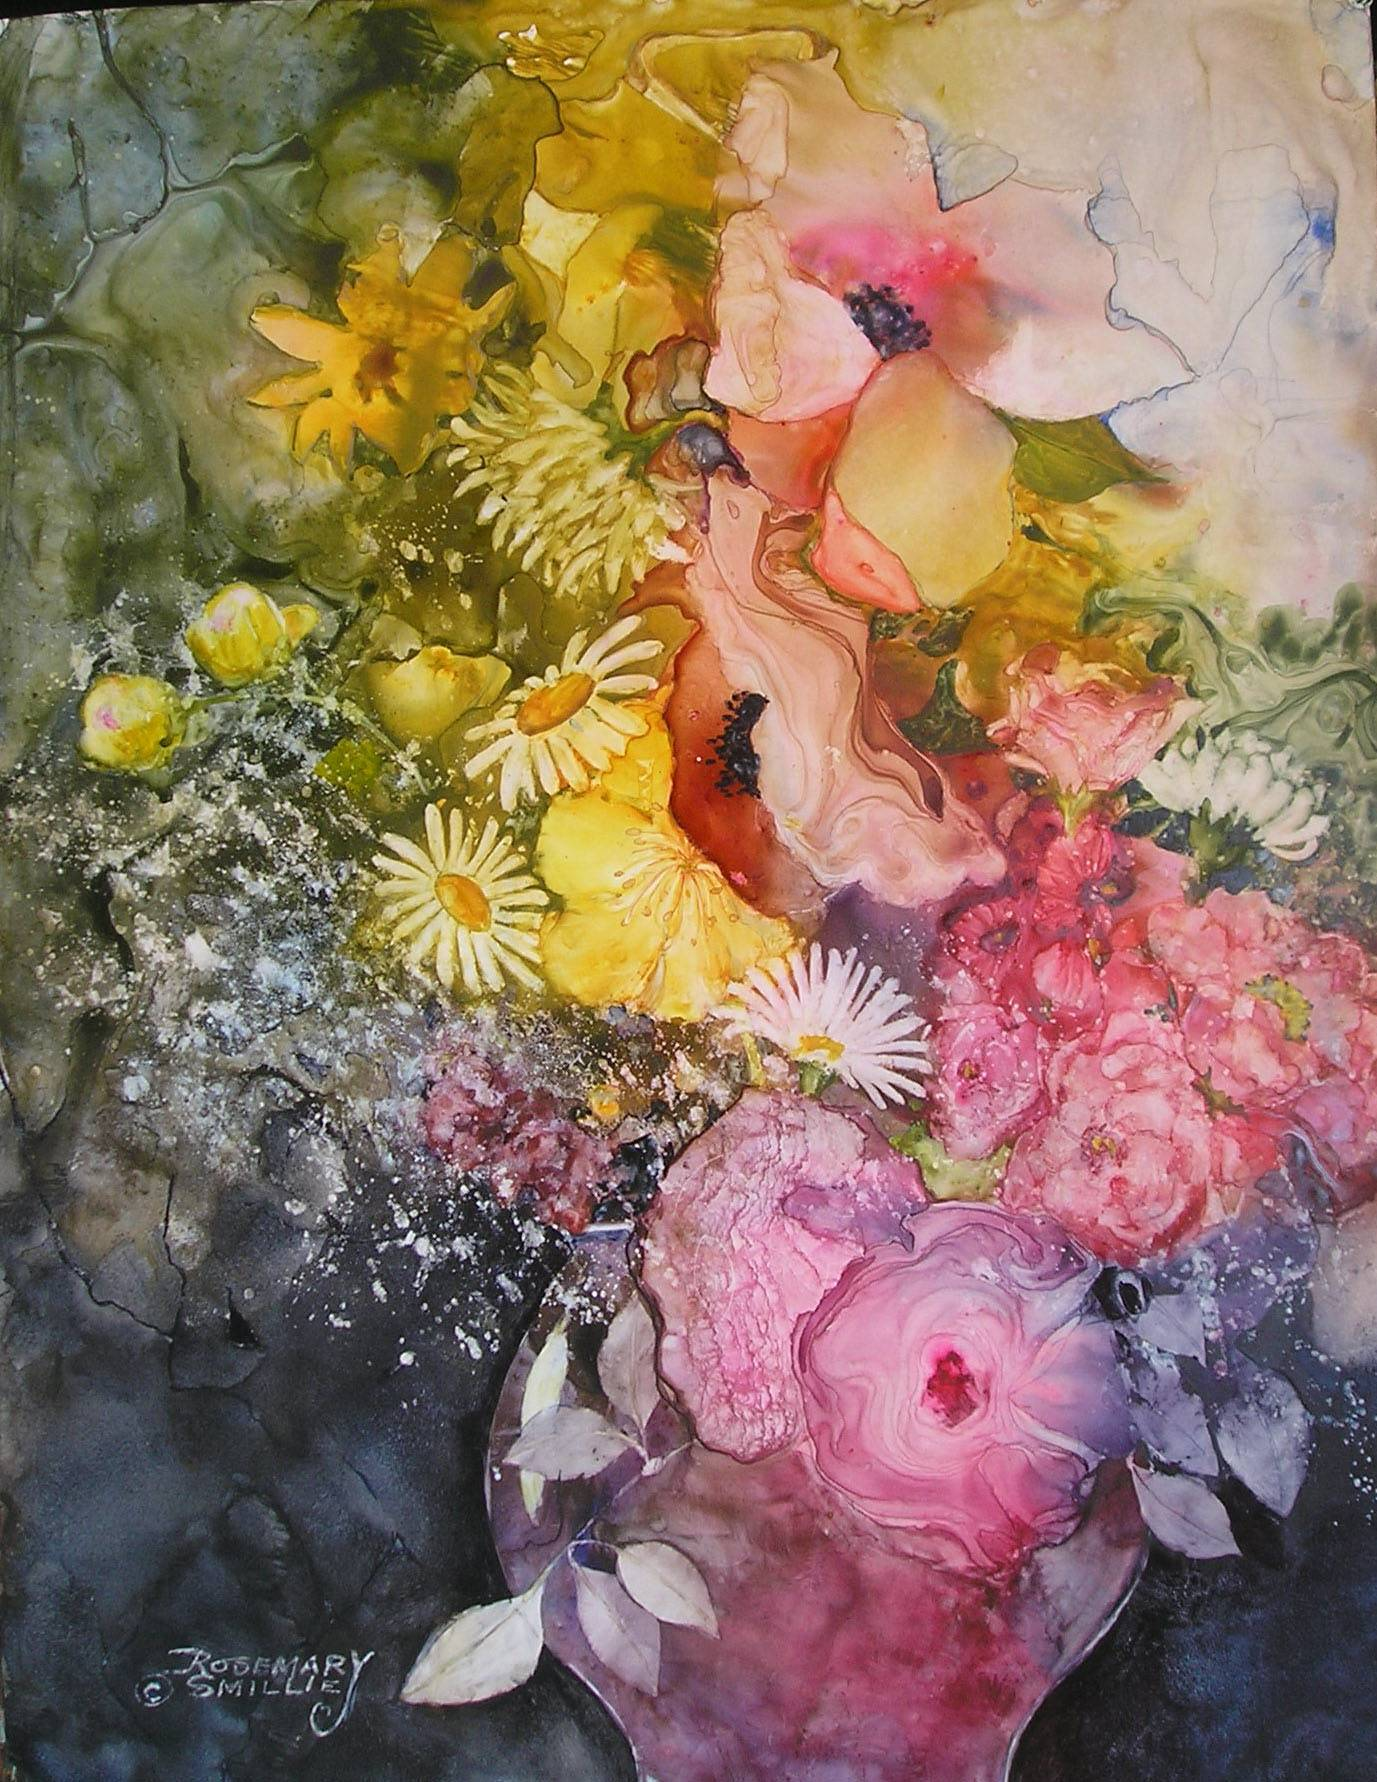 """The Arrangement"" is one of the works guests will see in the Rosemary Smillie exhibit at The Holmstad in Batavia. The show is open daily from 9 a.m. to 5 p.m. through June 29."